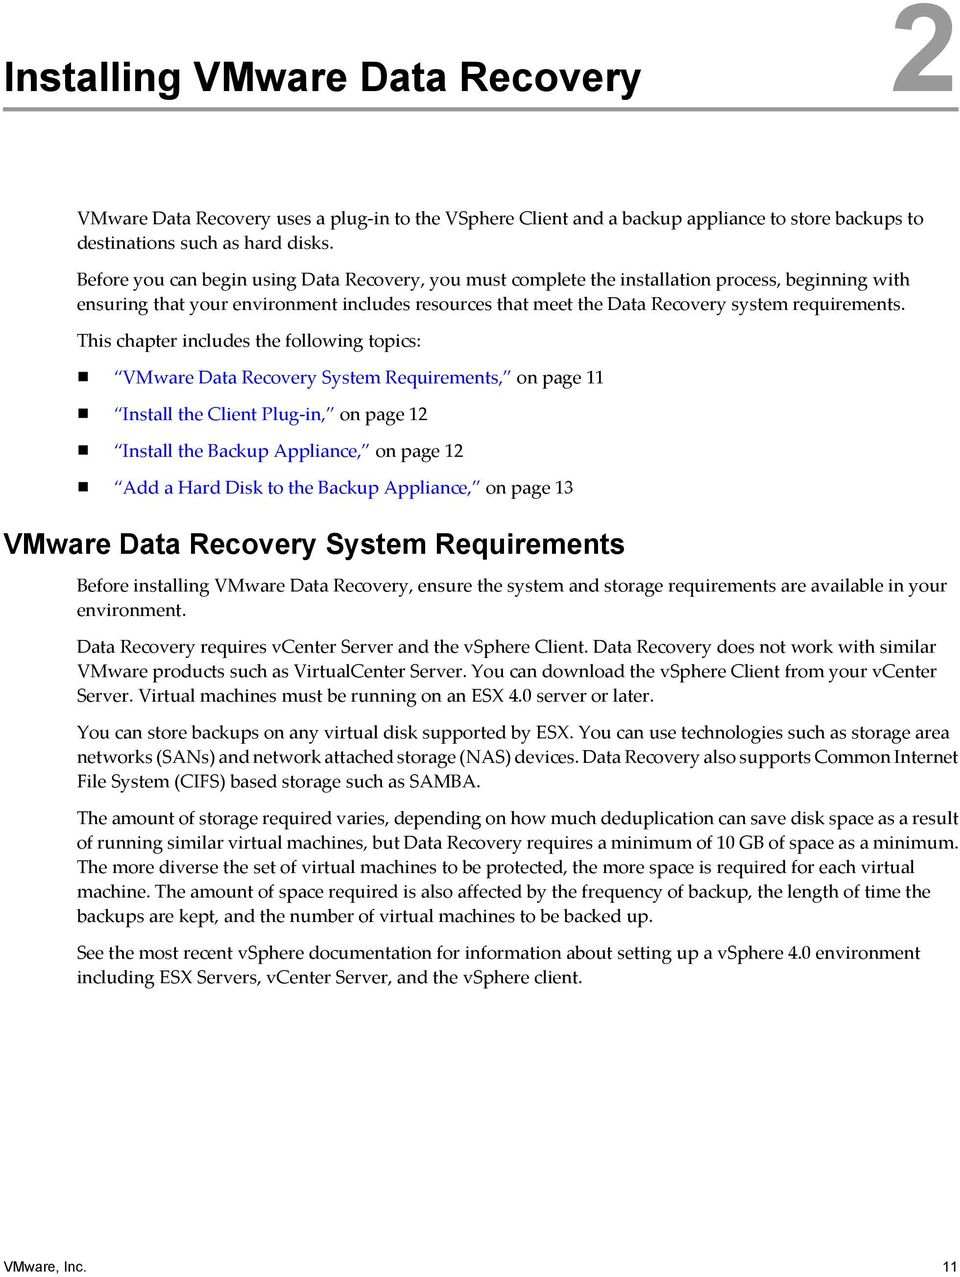 This chapter includes the following topics: VMware Data Recovery System Requirements, on page 11 Install the Client Plug-in, on page 12 Install the Backup Appliance, on page 12 Add a Hard Disk to the